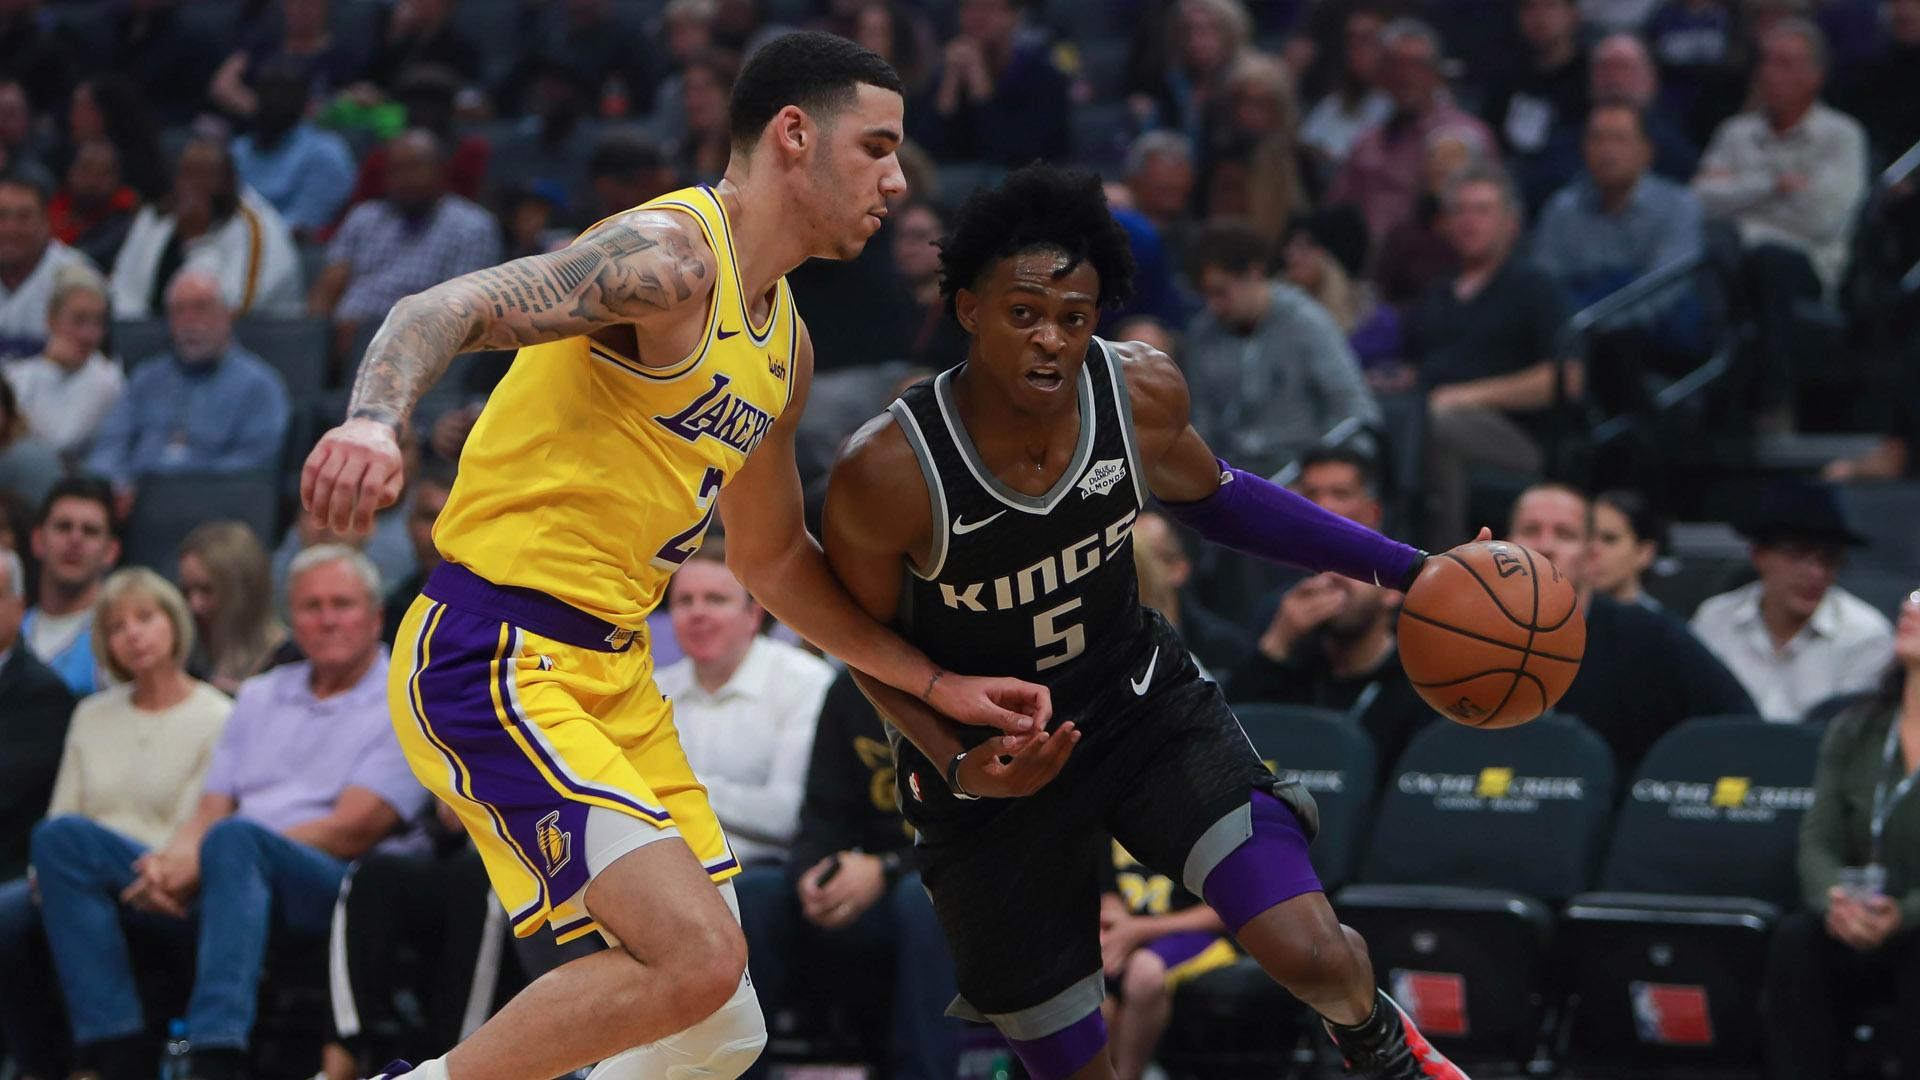 6b31a64b9811 NBA rumors  Lakers drafting Lonzo Ball over De Aaron Fox was tension point  originally appeared on nbcsportsbayarea.com Put plain and simple